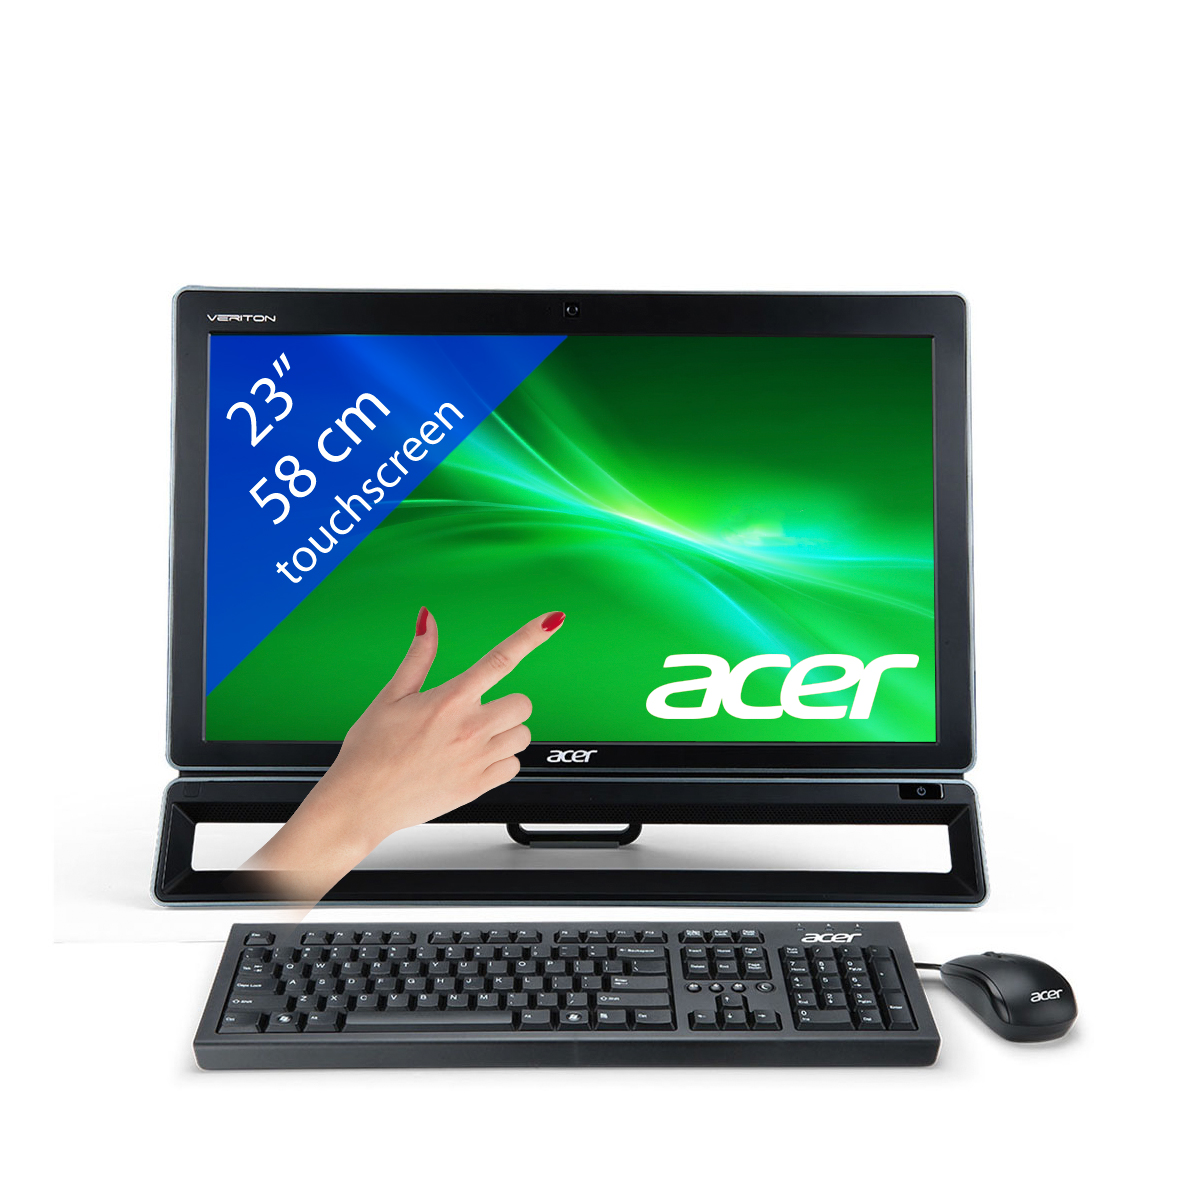 Acer-Touch-Computers-Veriton-VTZ4631G